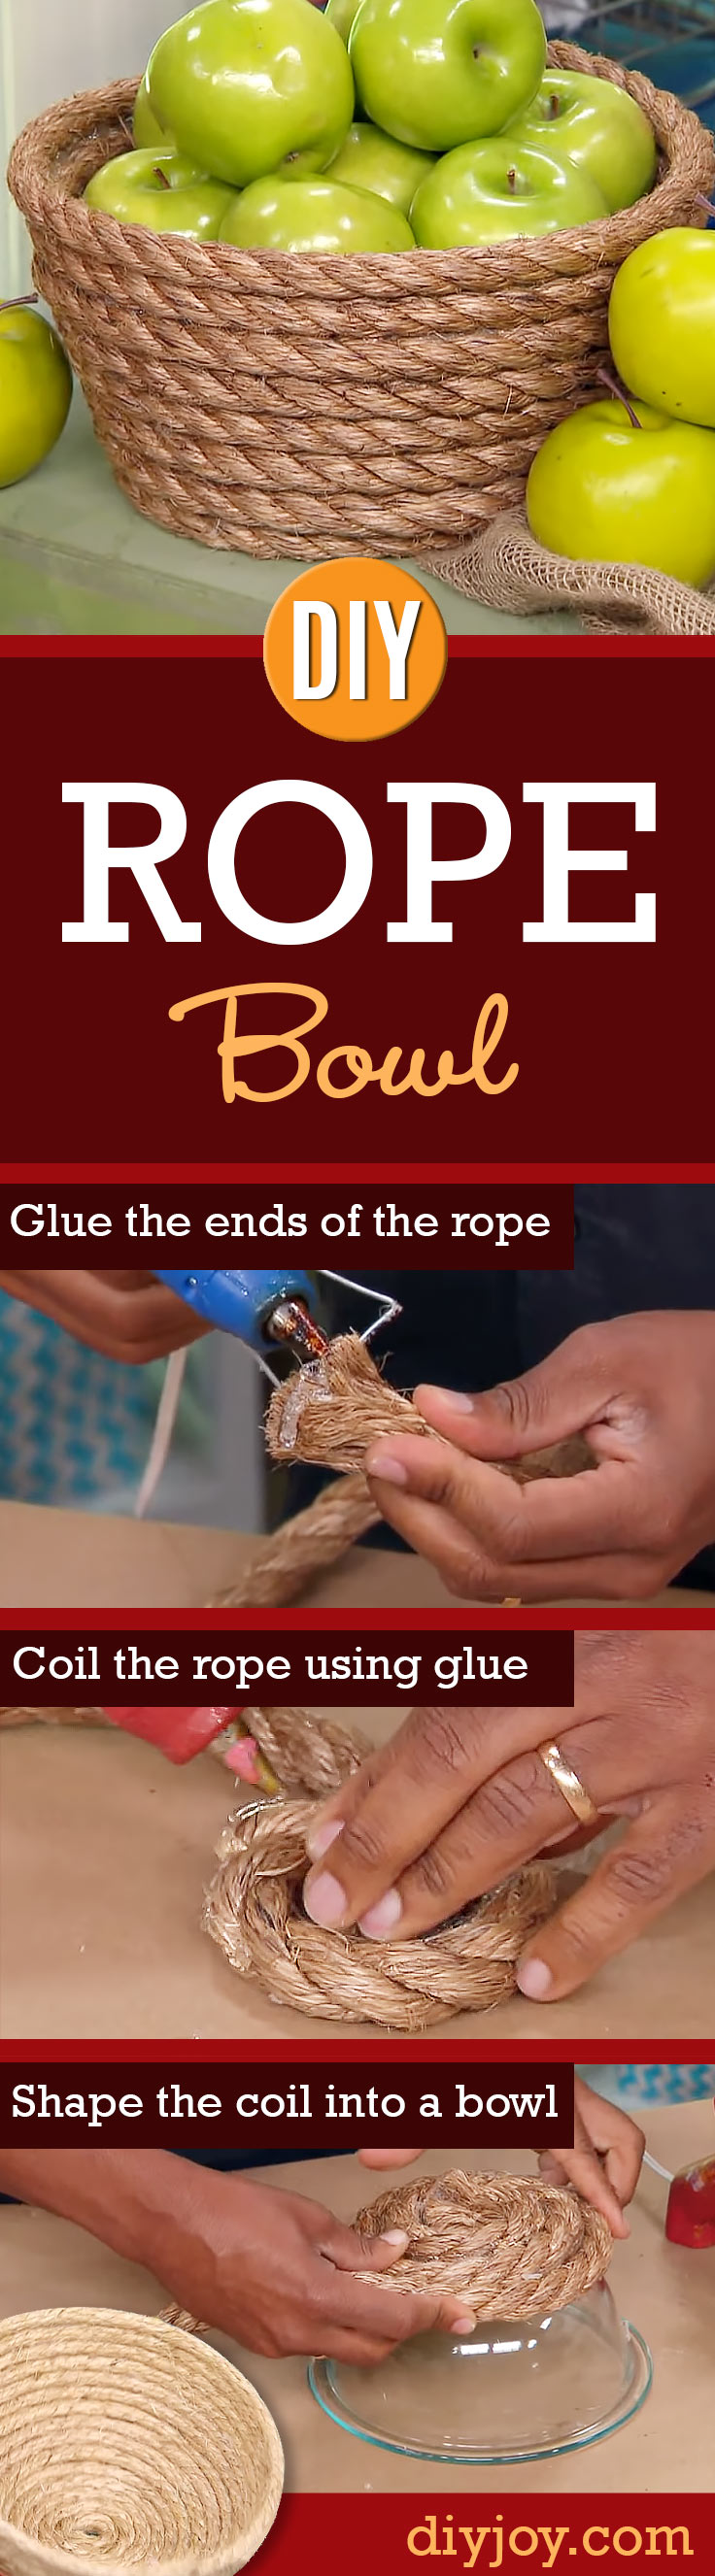 DIY Storage Ideas - DIY Rope Bowls - Home Decor and Organizing Projects for The Bedroom, Bathroom, Living Room, Panty and Storage Projects - Tutorials and Step by Step Instructions for Do It Yourself Organization http://diyjoy.com/diy-storage-ideas-organization